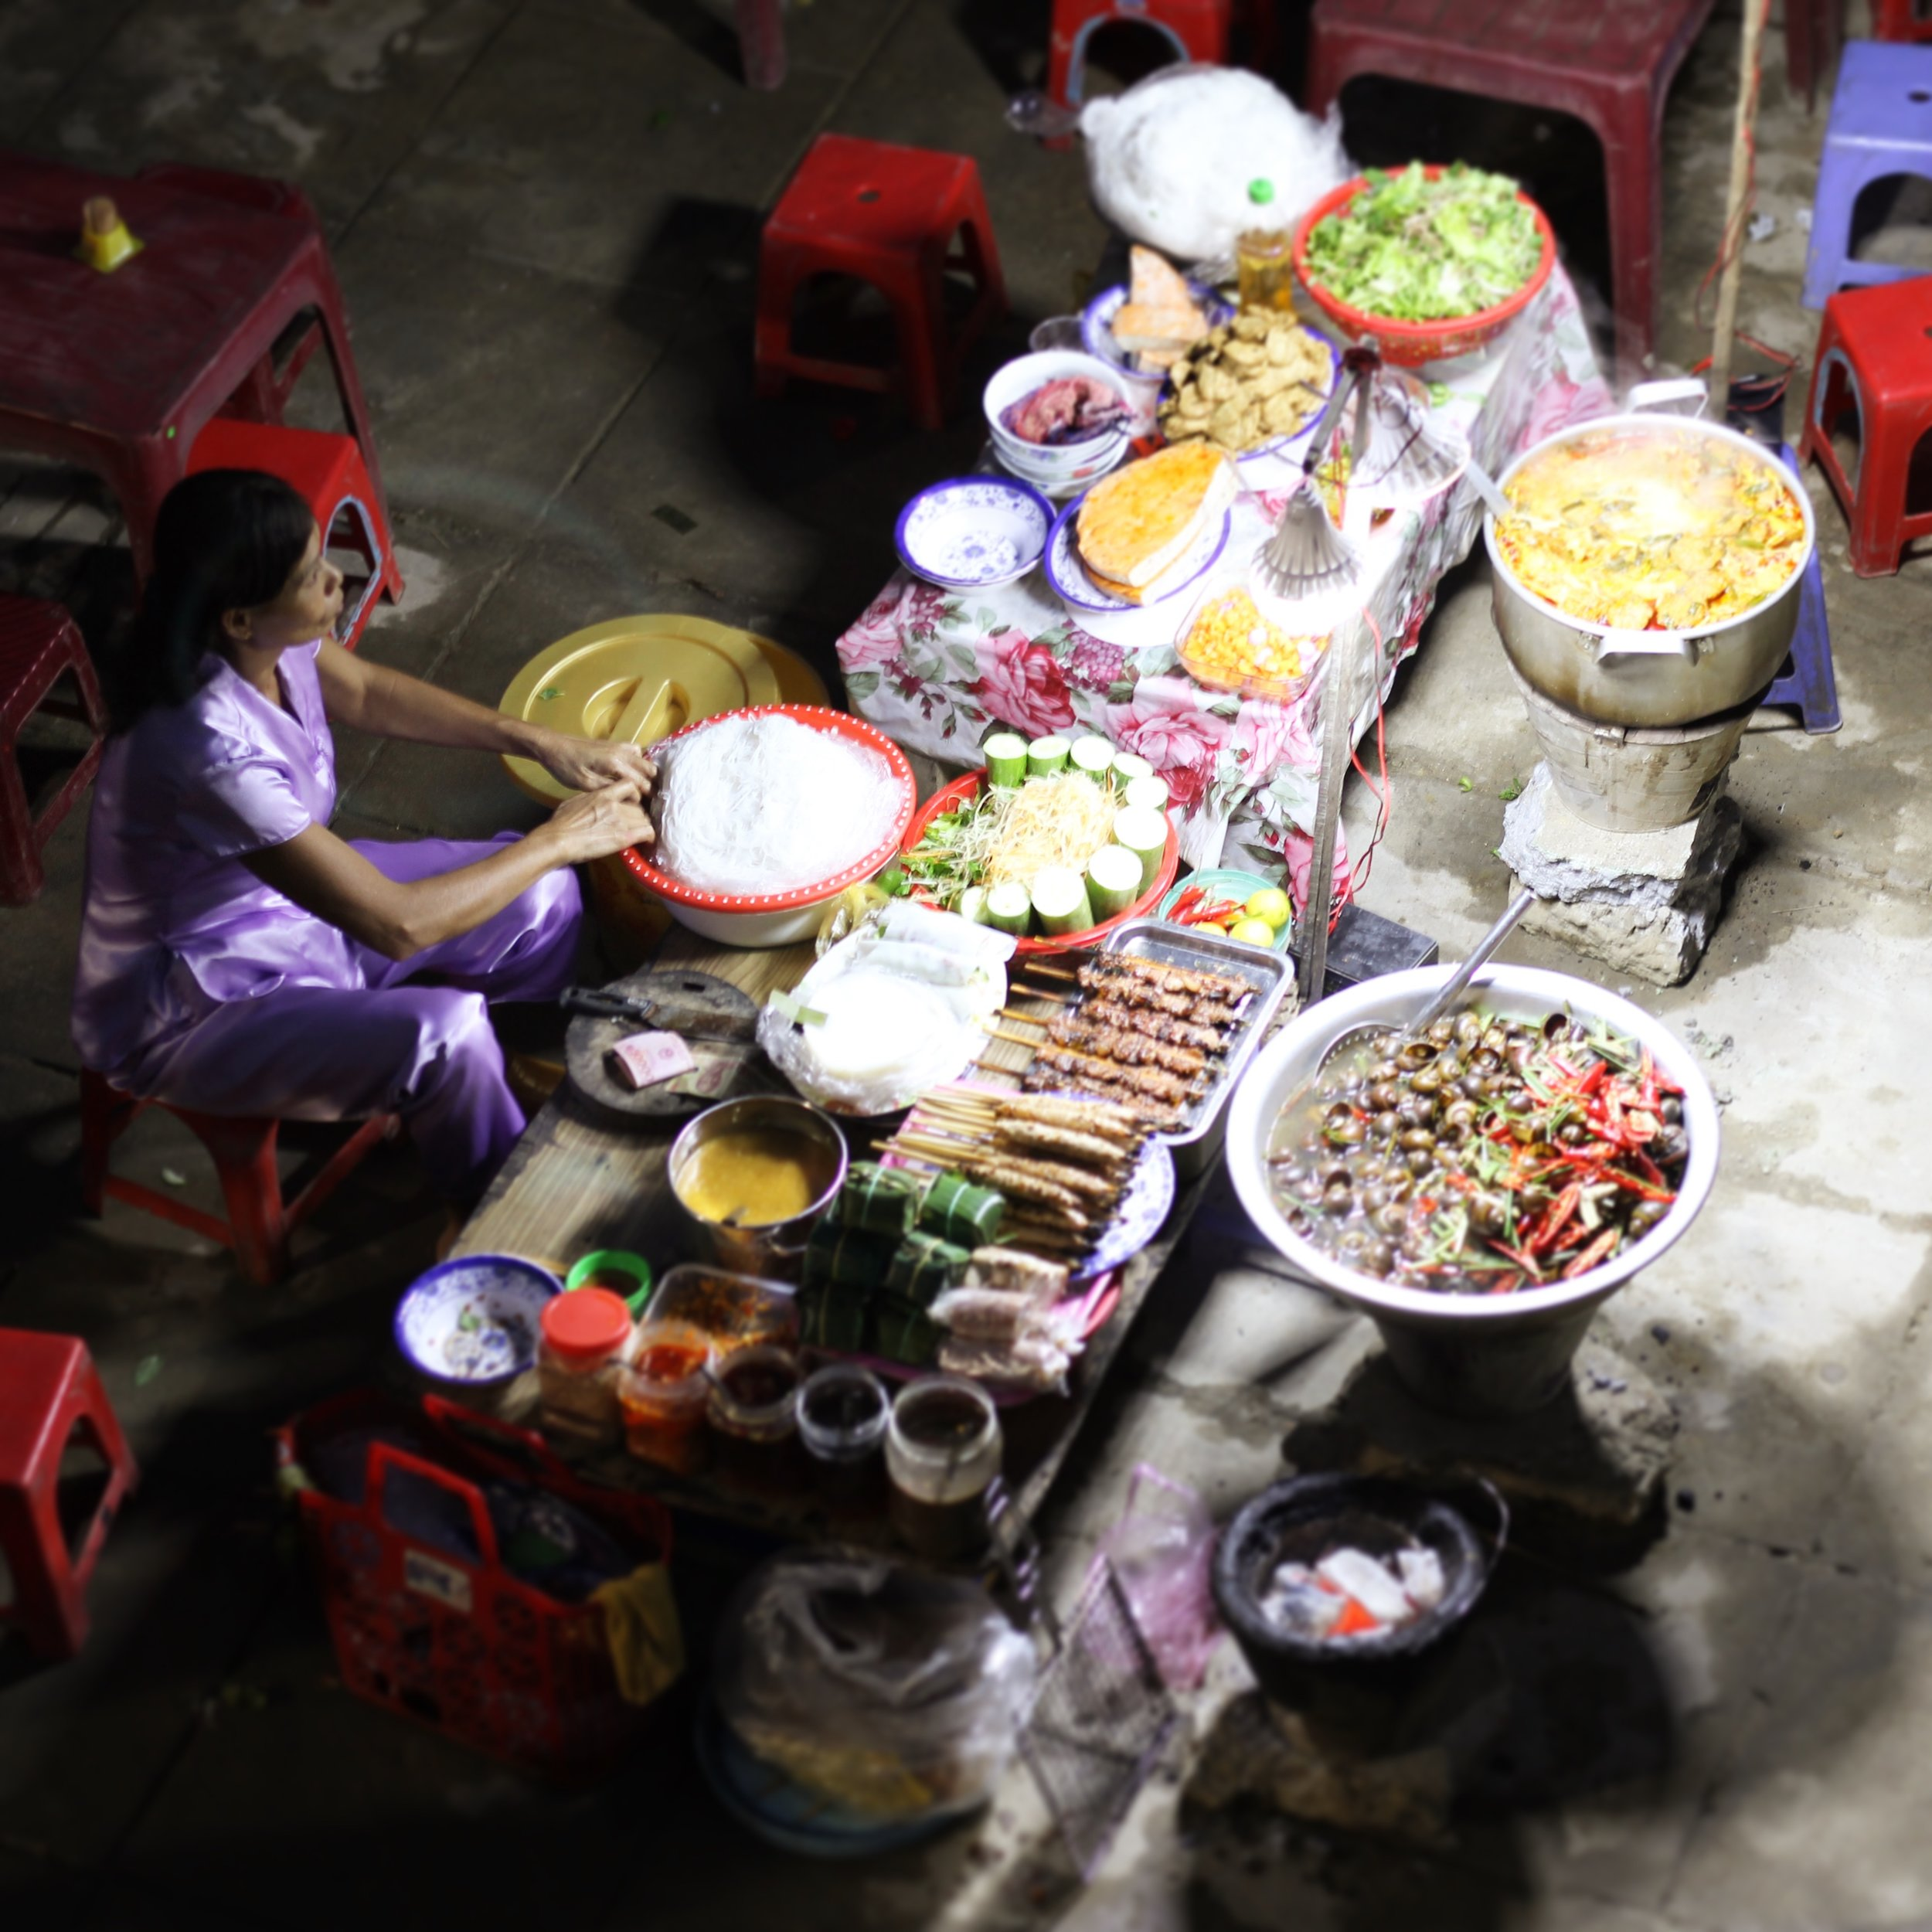 A woman cooking at her colorful street stand at night in Hue.